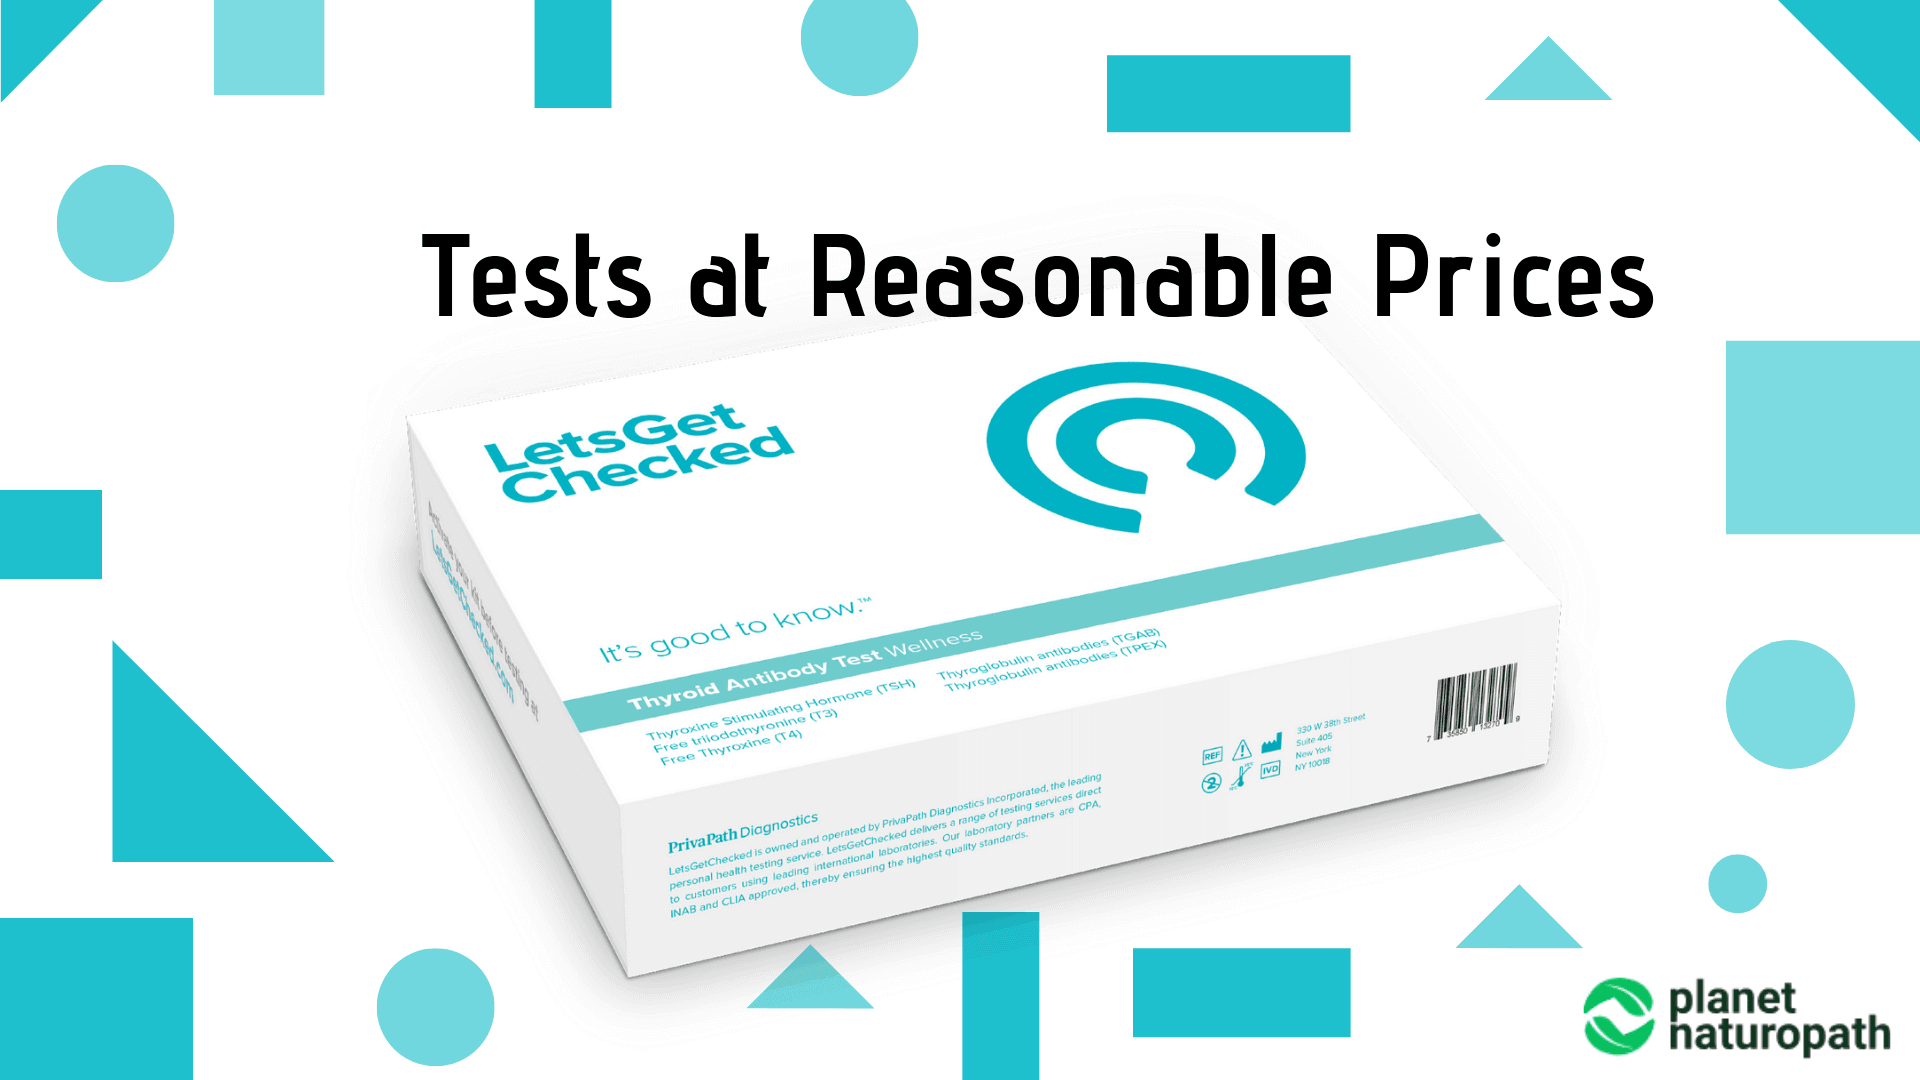 Tests-at-Reasonable-Prices